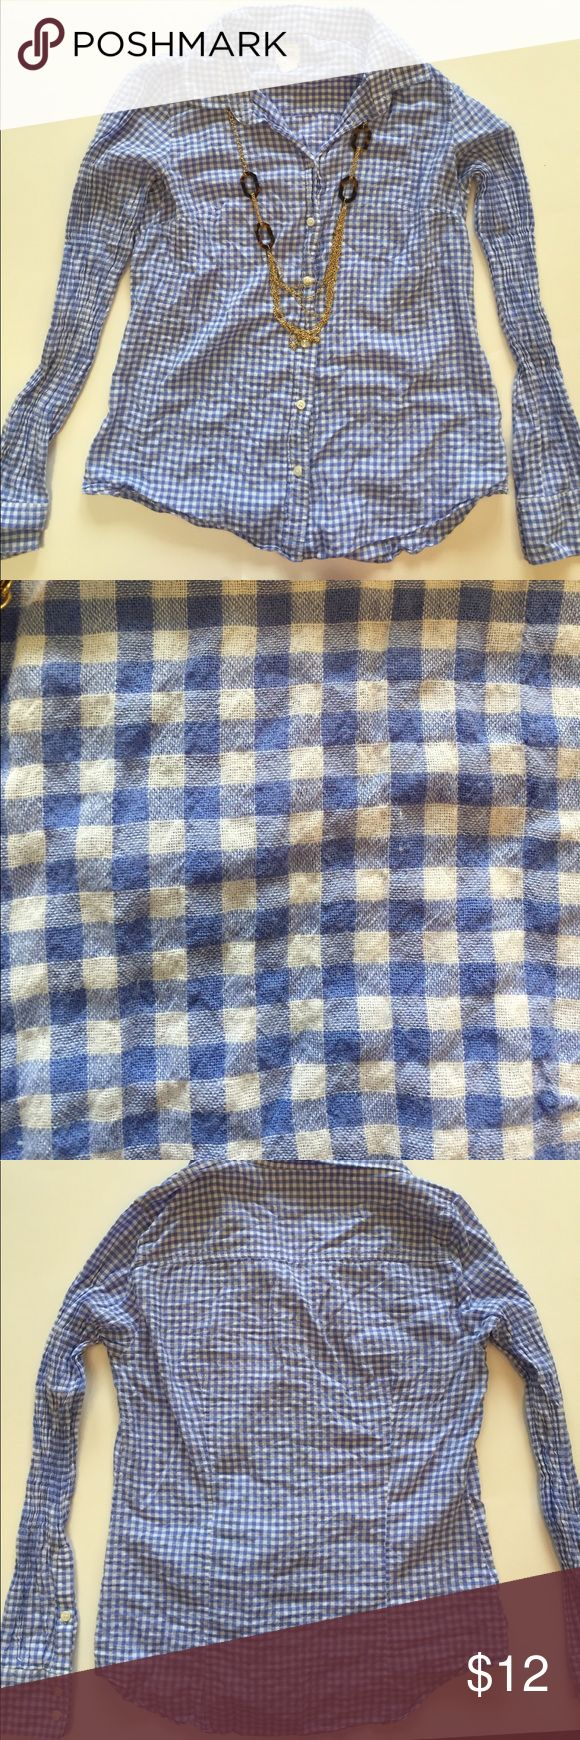 J. Crew Blue Gingham Button Up Blue gingham button up from J. Crew. Size small and made from cotton/ spandex. Would look great with a pair of white shorts! J. Crew Tops Button Down Shirts